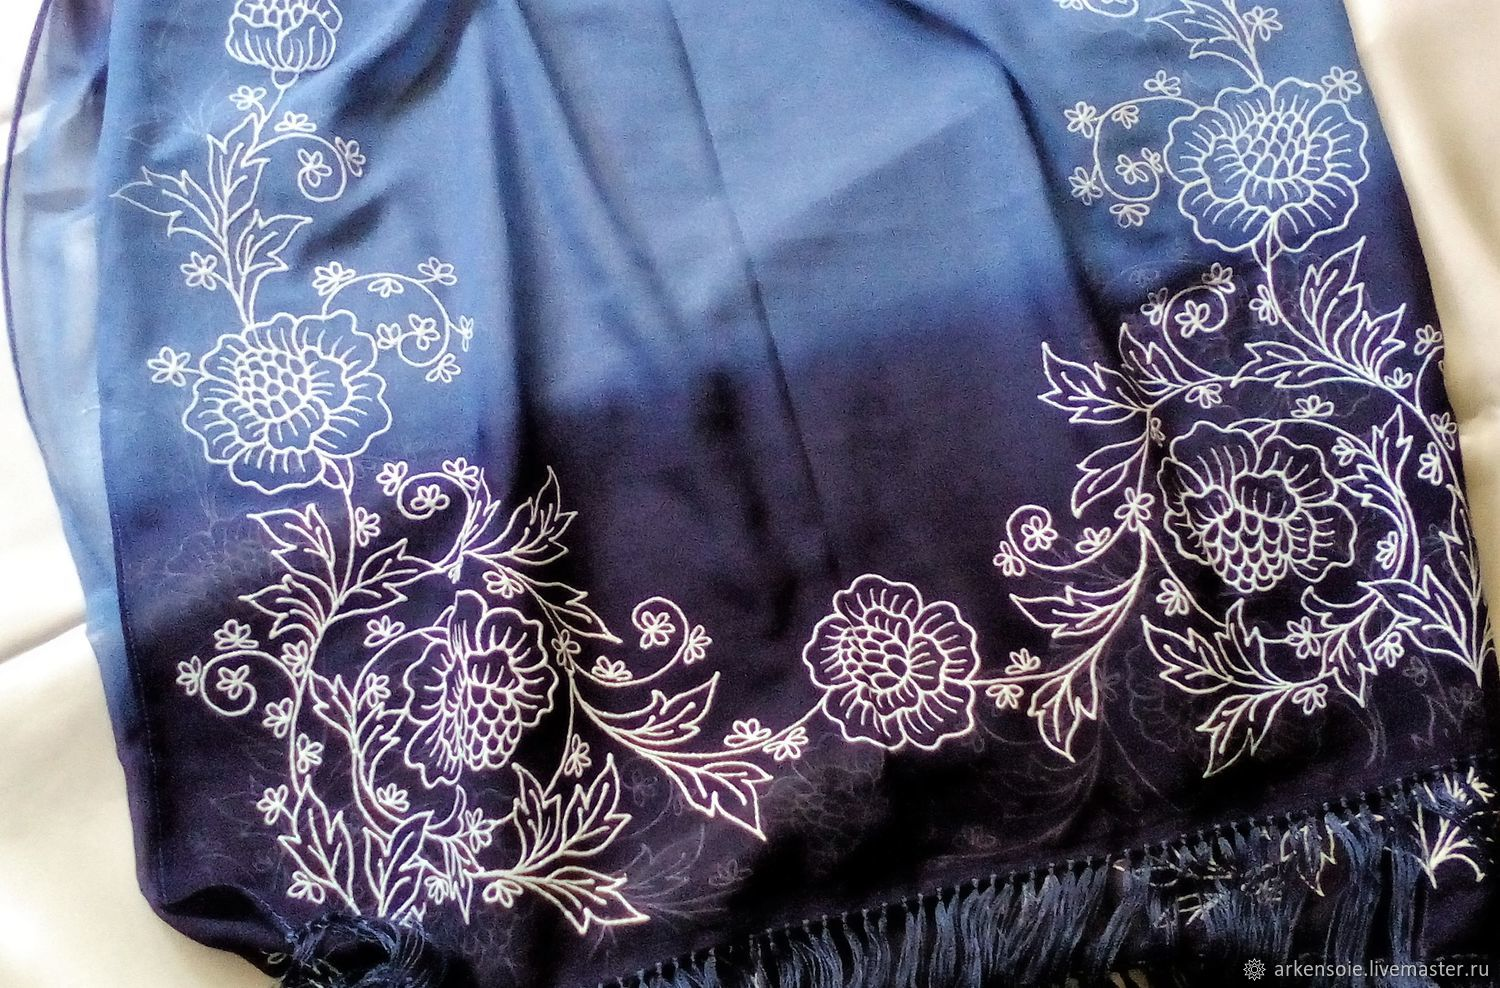 Rose black stole with tassels,200h65 cm, painted